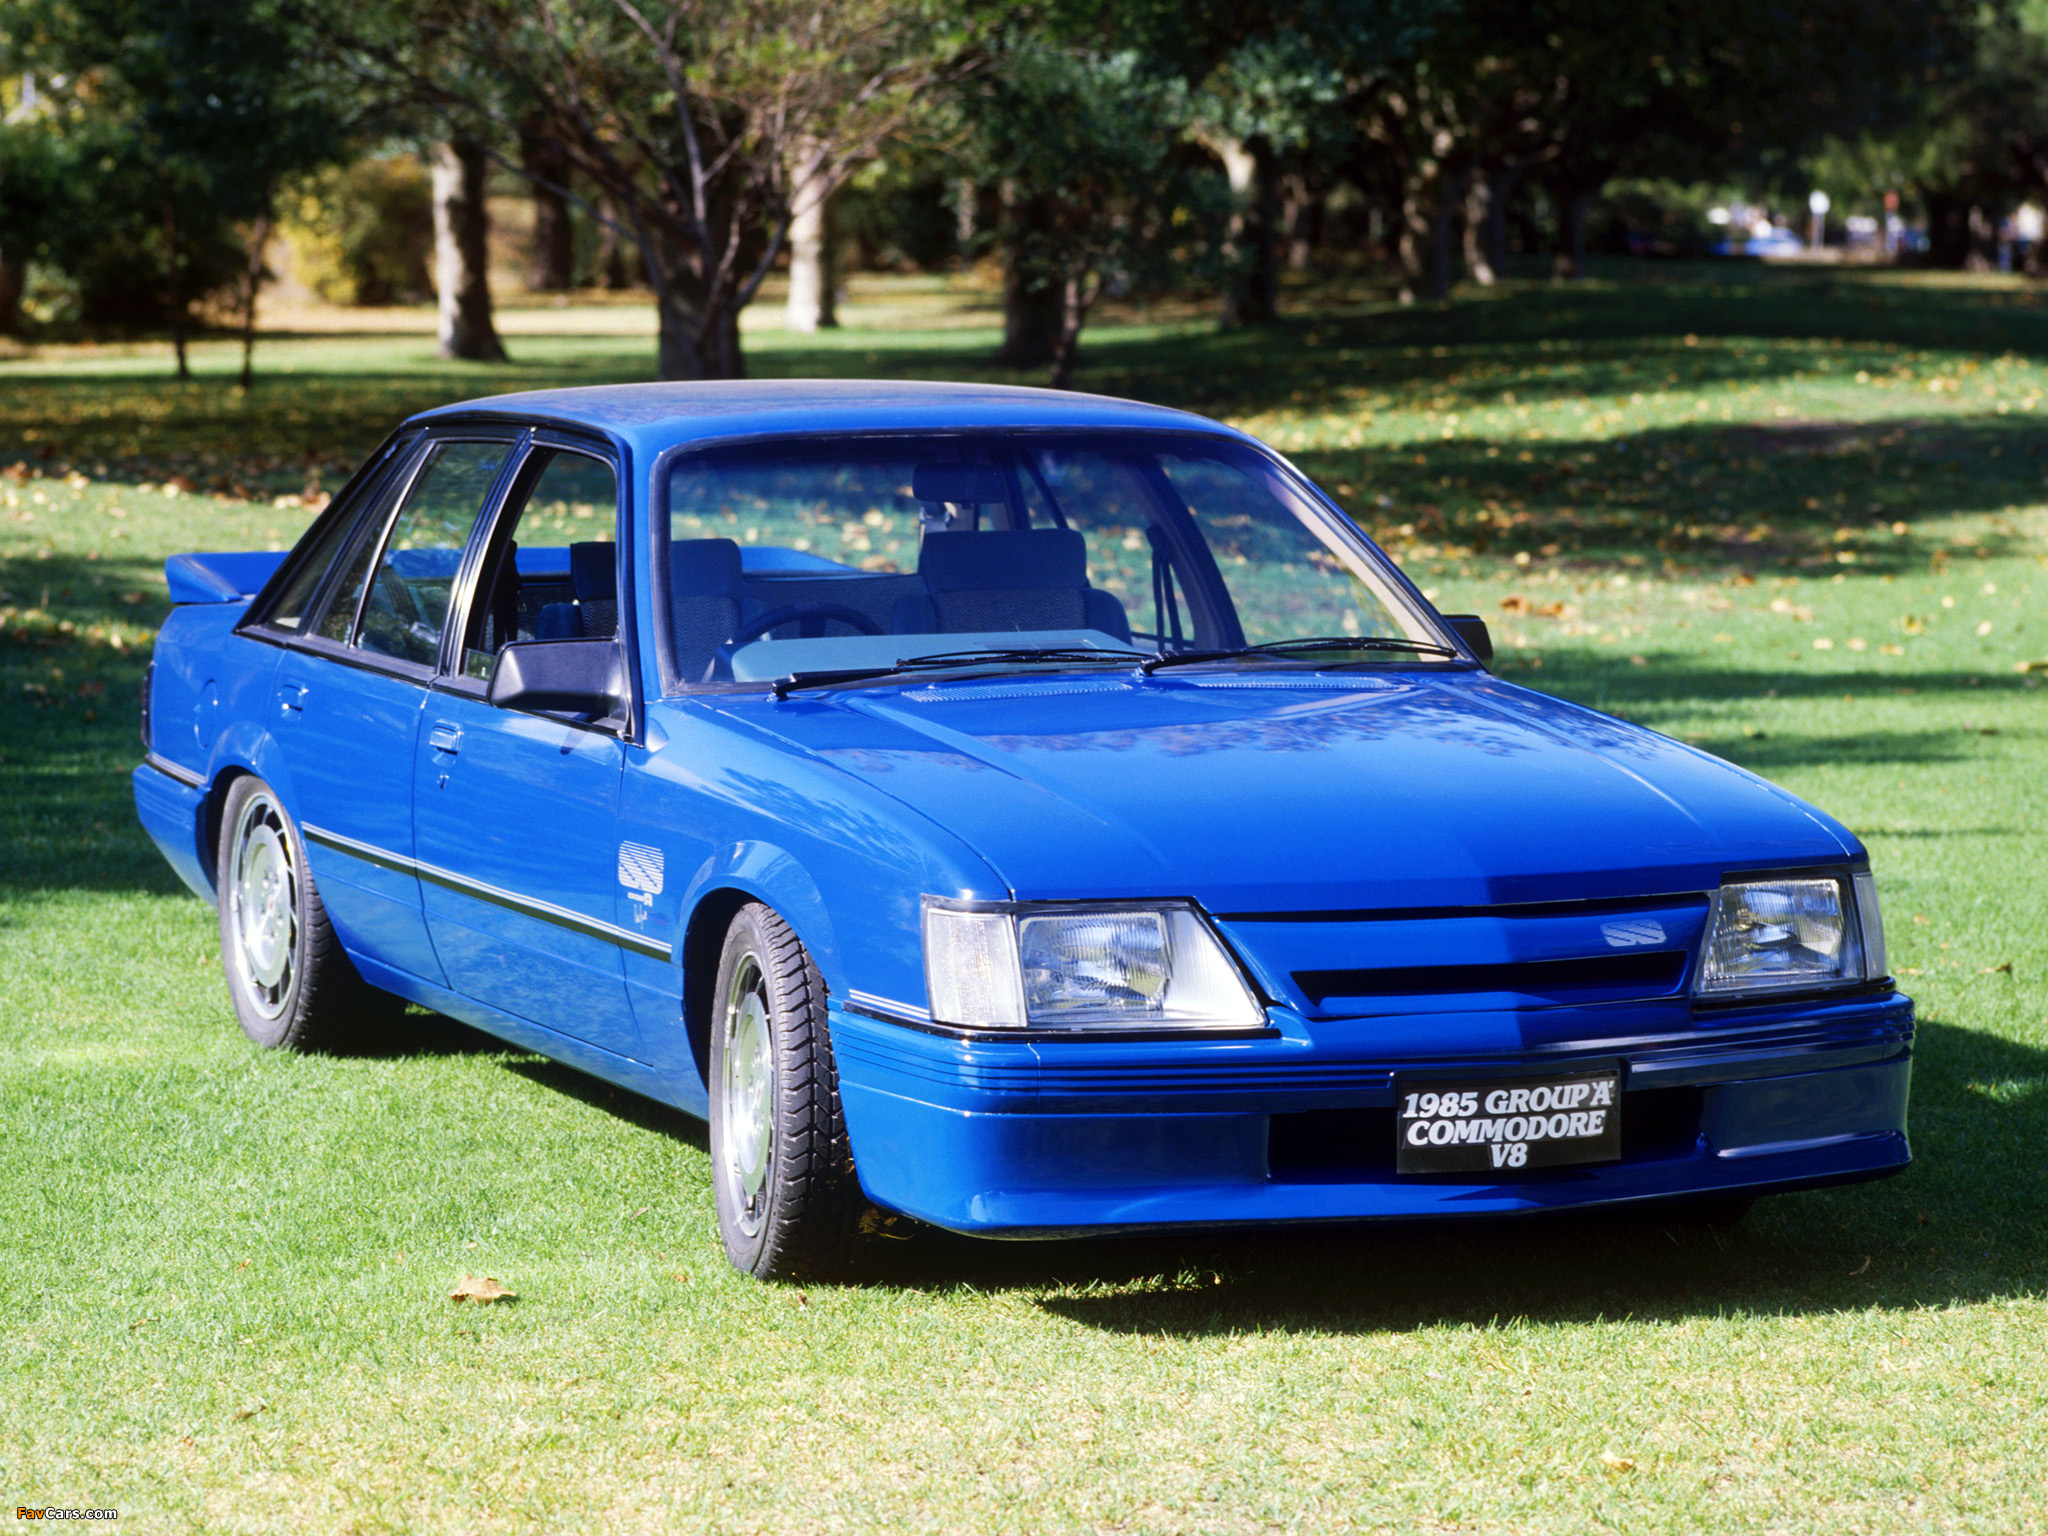 1985 Holden Commodore #2